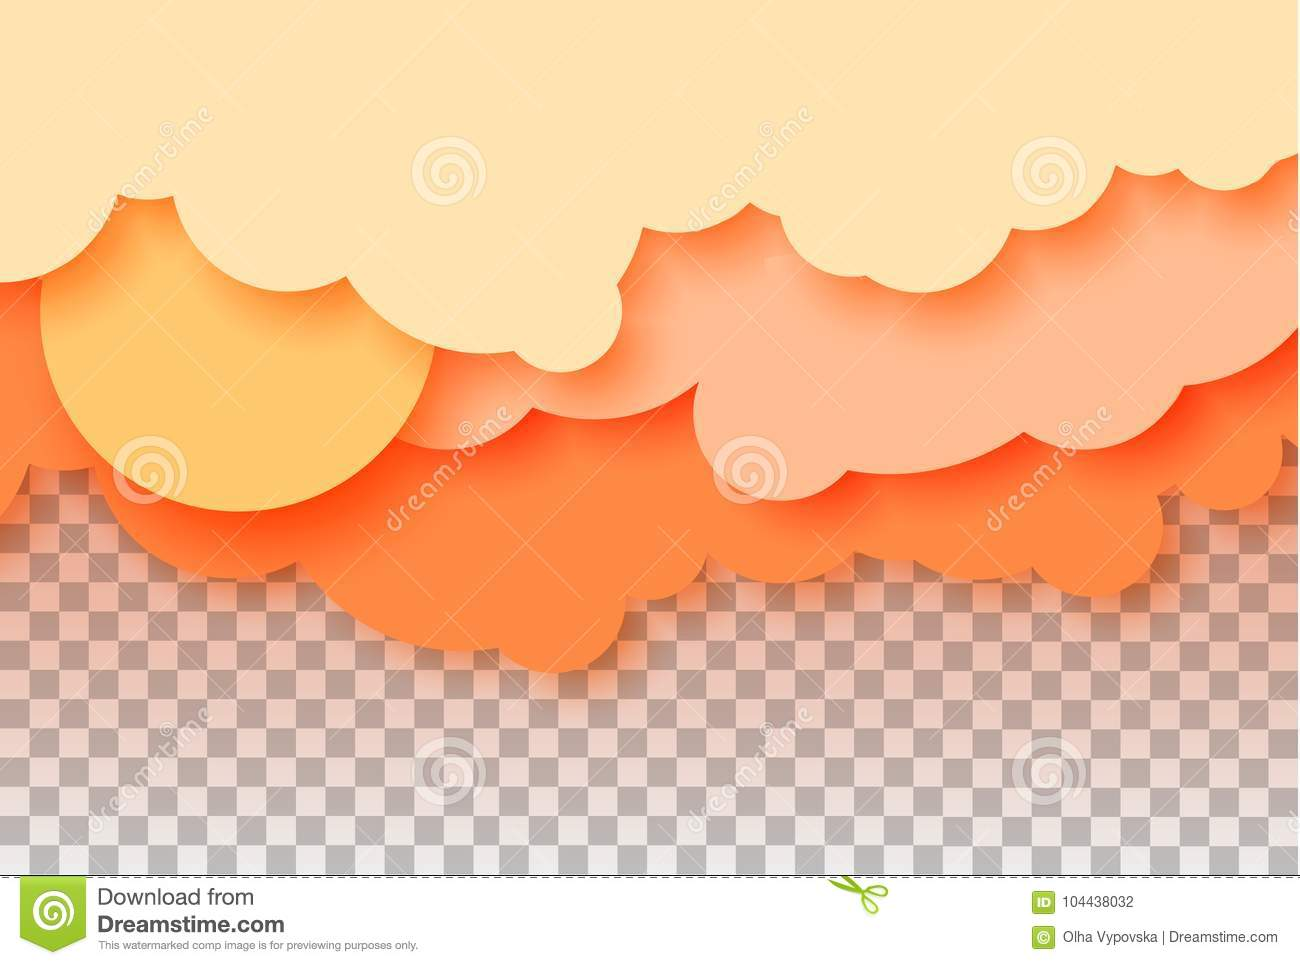 3d abstract paper cut illustration of pastel orange sky sun and